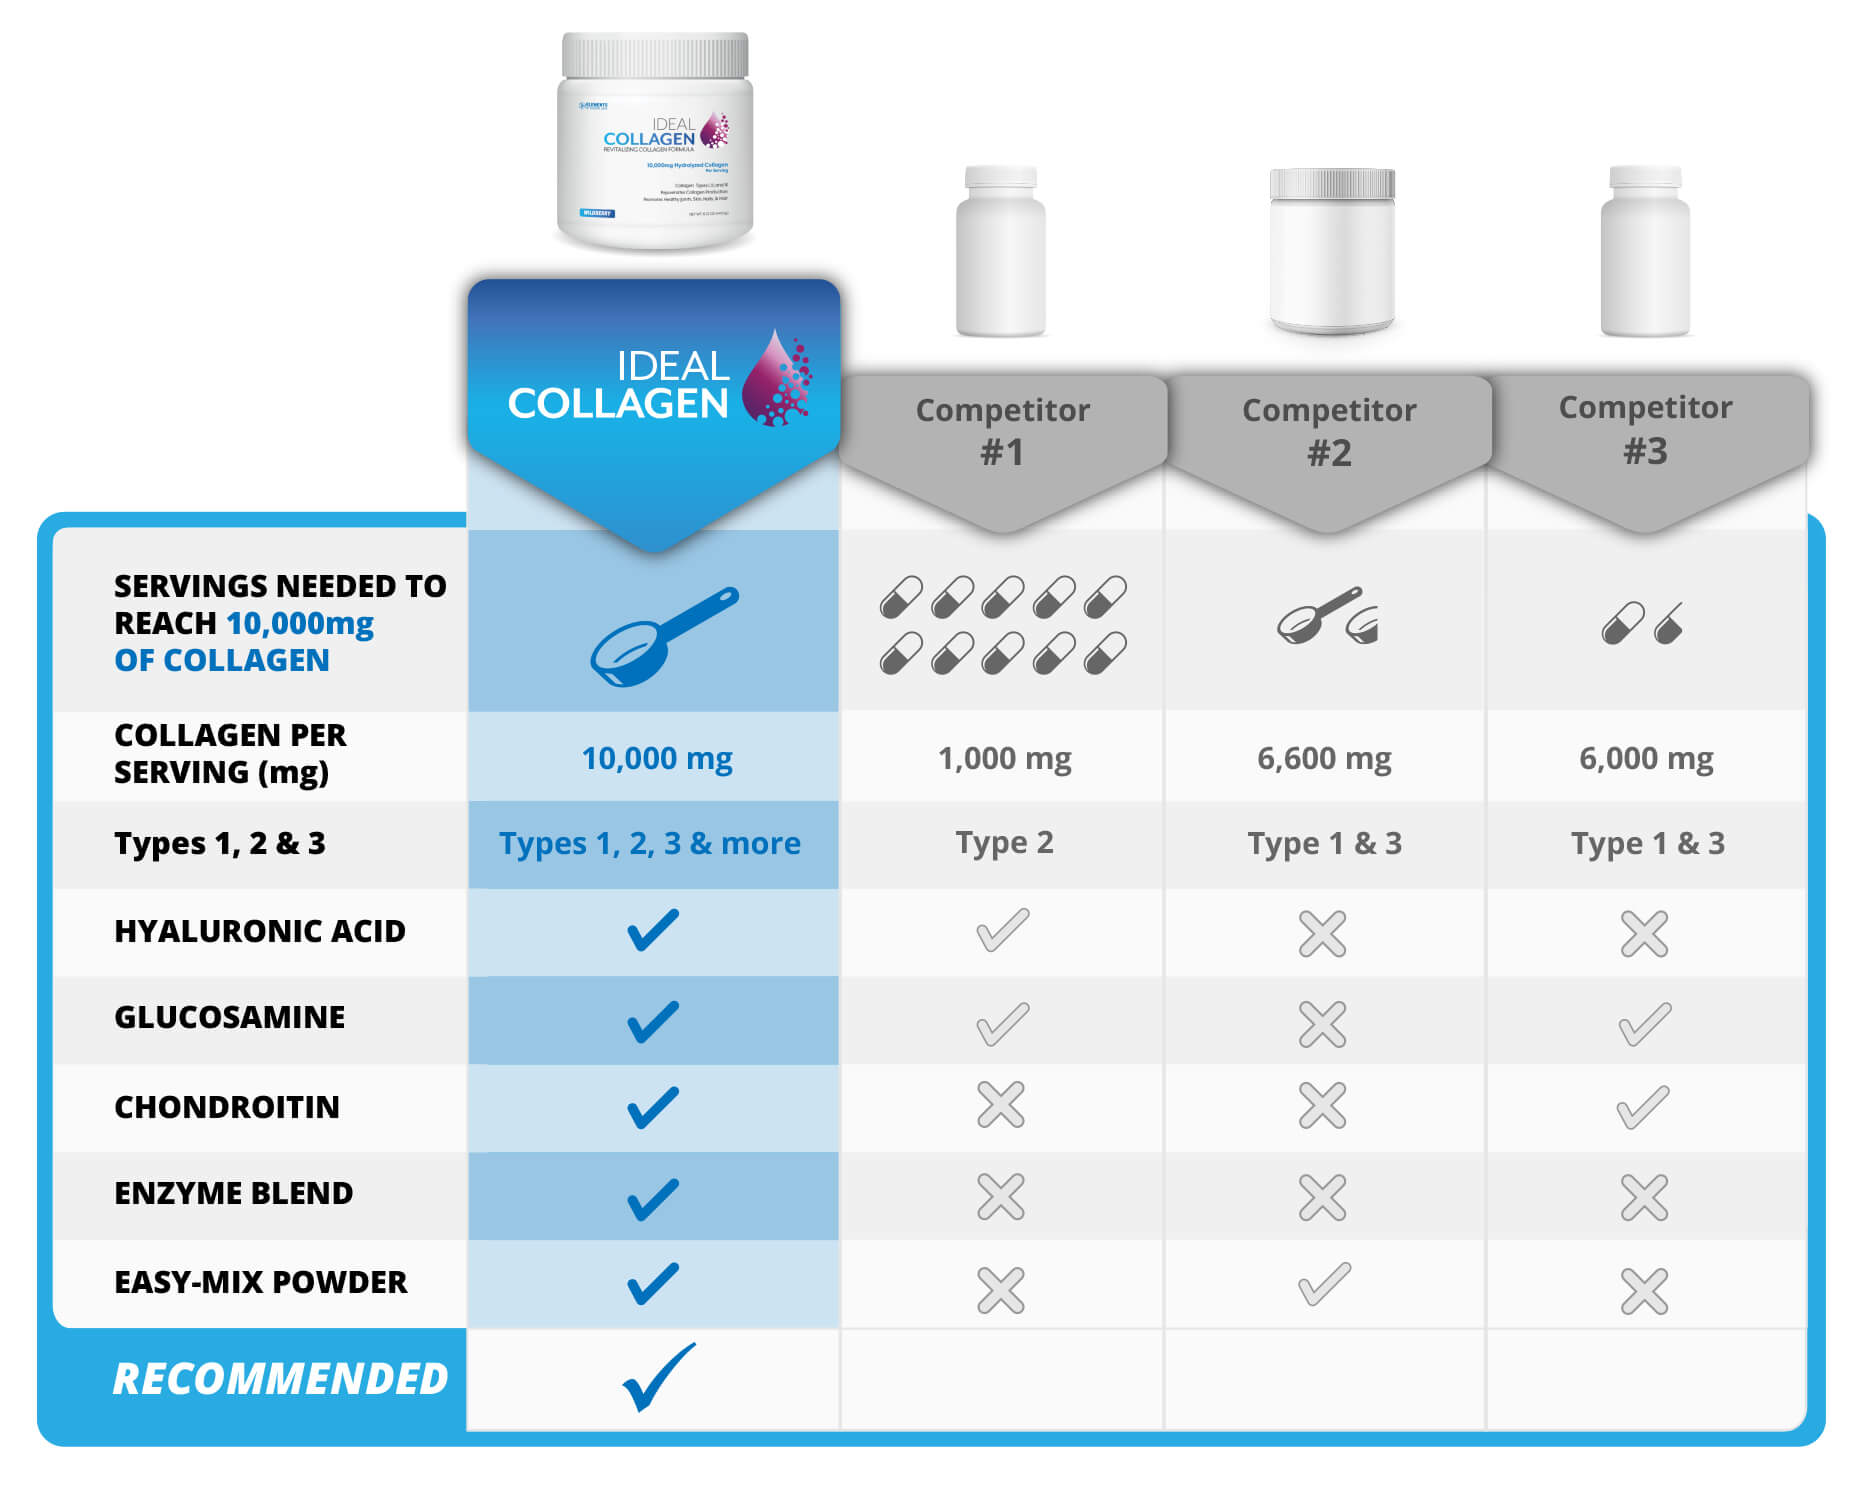 Hydrolyzed Collagen Ideal Collagen Comparison Chart